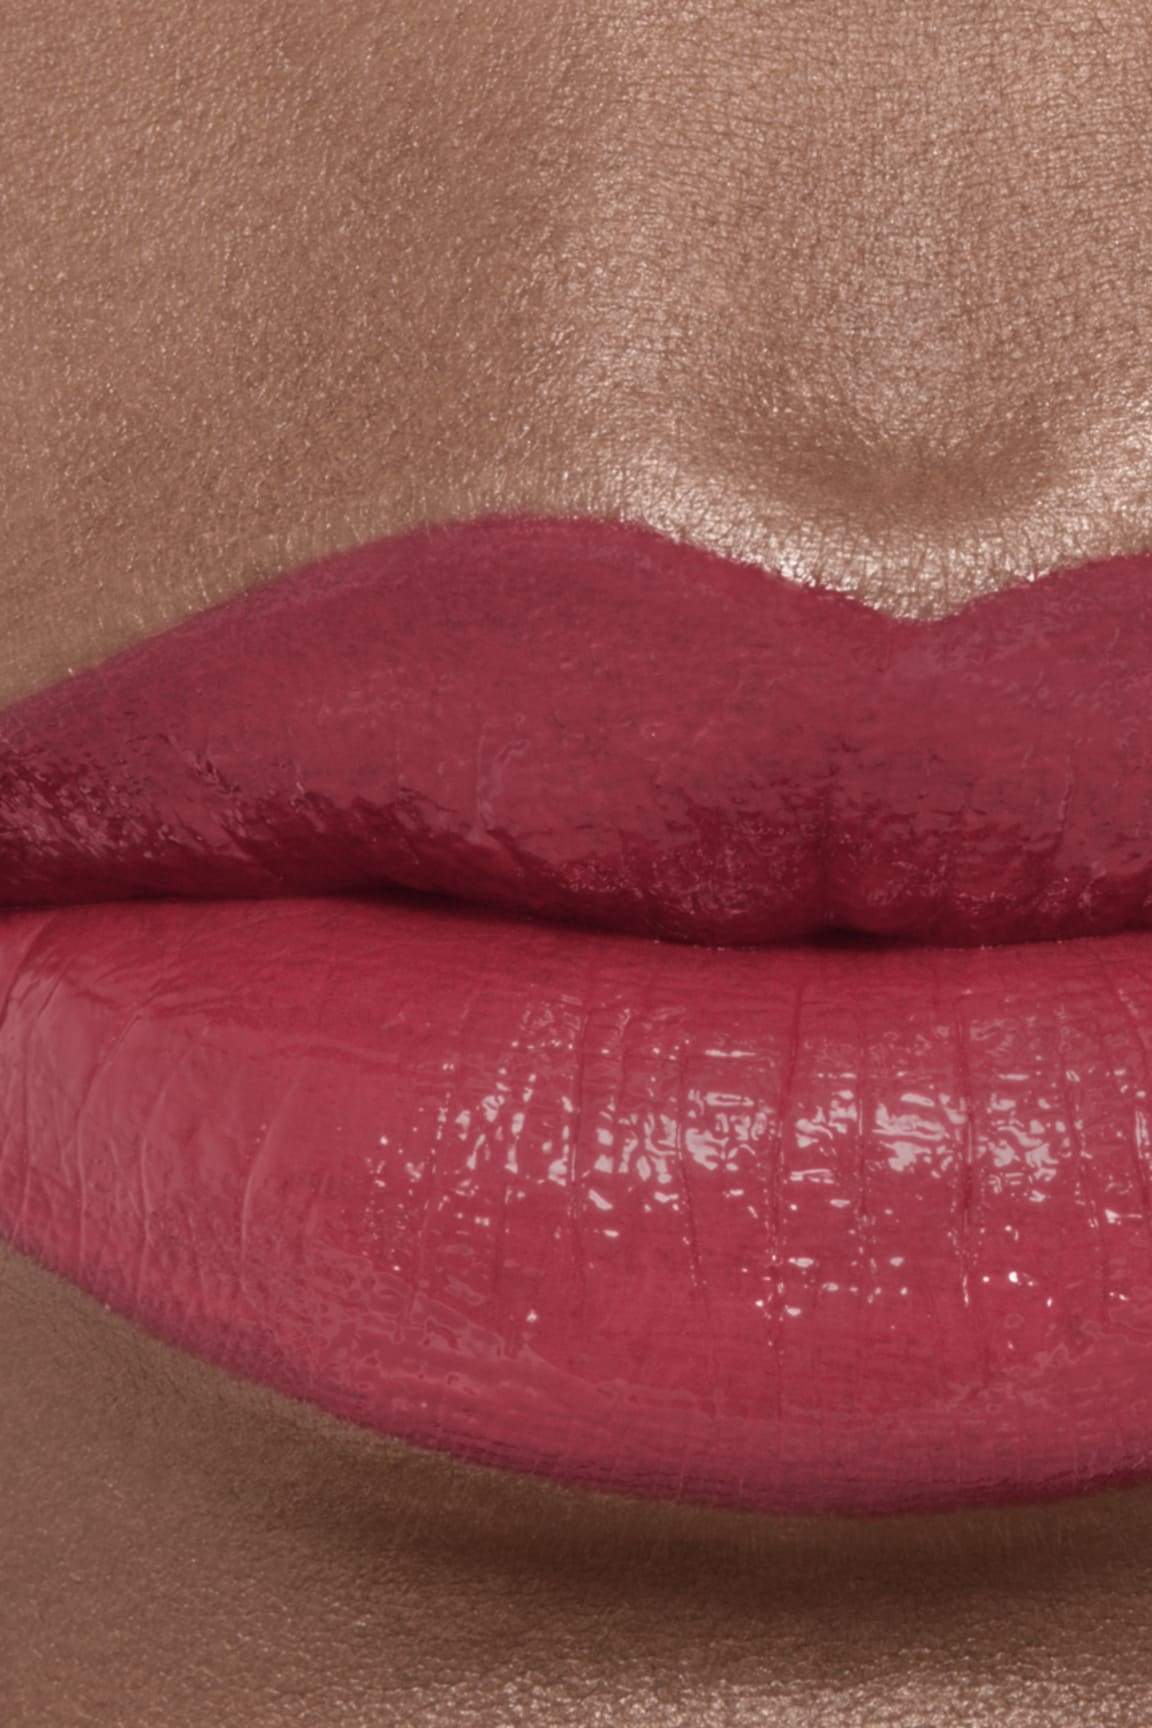 Application makeup visual 2 - ROUGE COCO BLOOM 124 - MERVEILLE